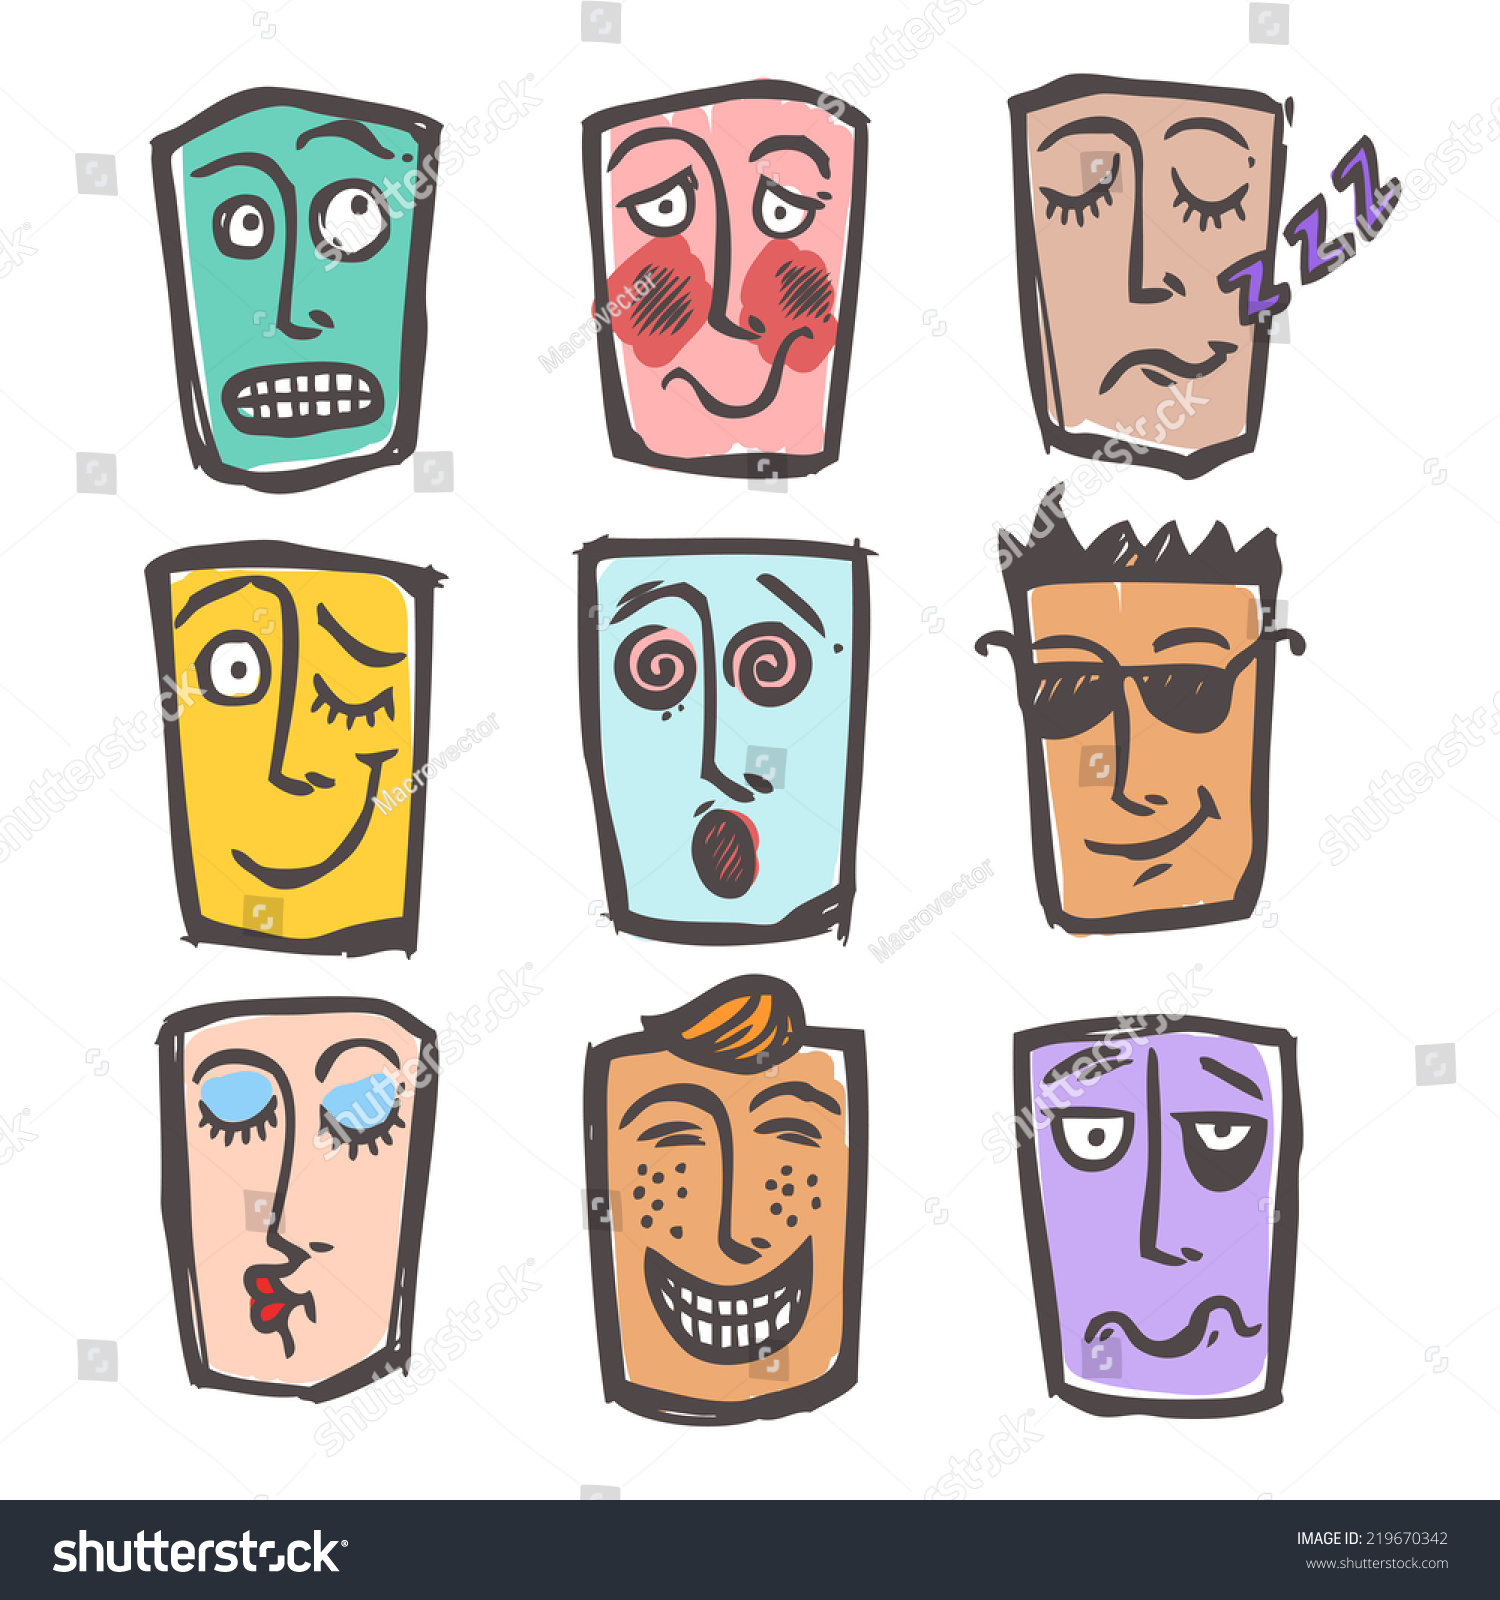 Sketch emoticons face expressions and emotions colored icons set of cool scared laughing man isolated illustration